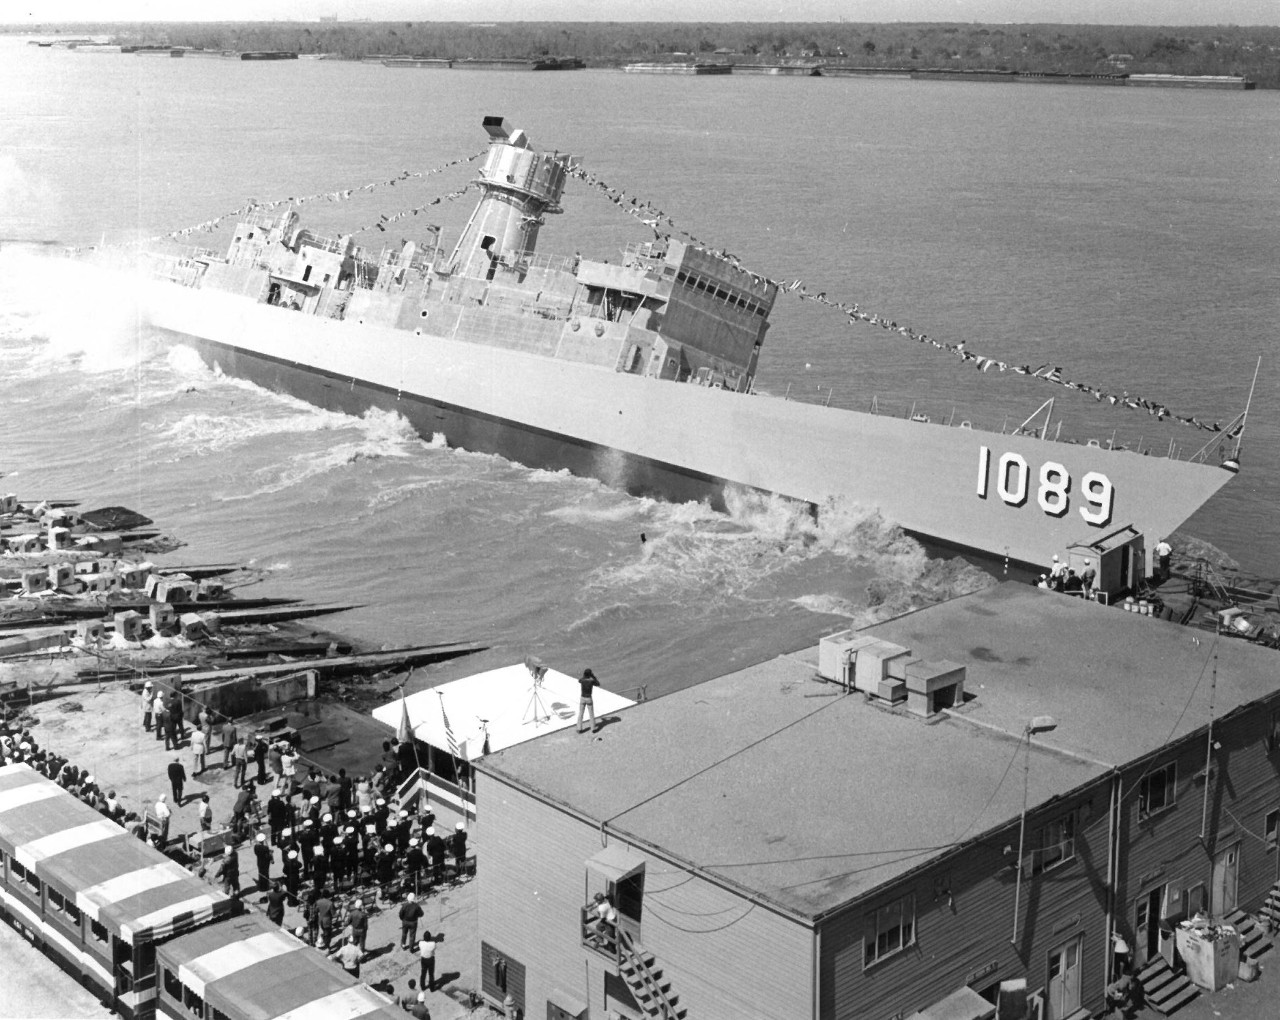 Jesse L. Brown is launched at Avondale Shipyards, 18 March 1972. (Avondale Shipyards, Inc. Photo 72-03-478, Ships History Subject Files Box 883, Jesse L. Brown History, Naval History and Heritage Command)